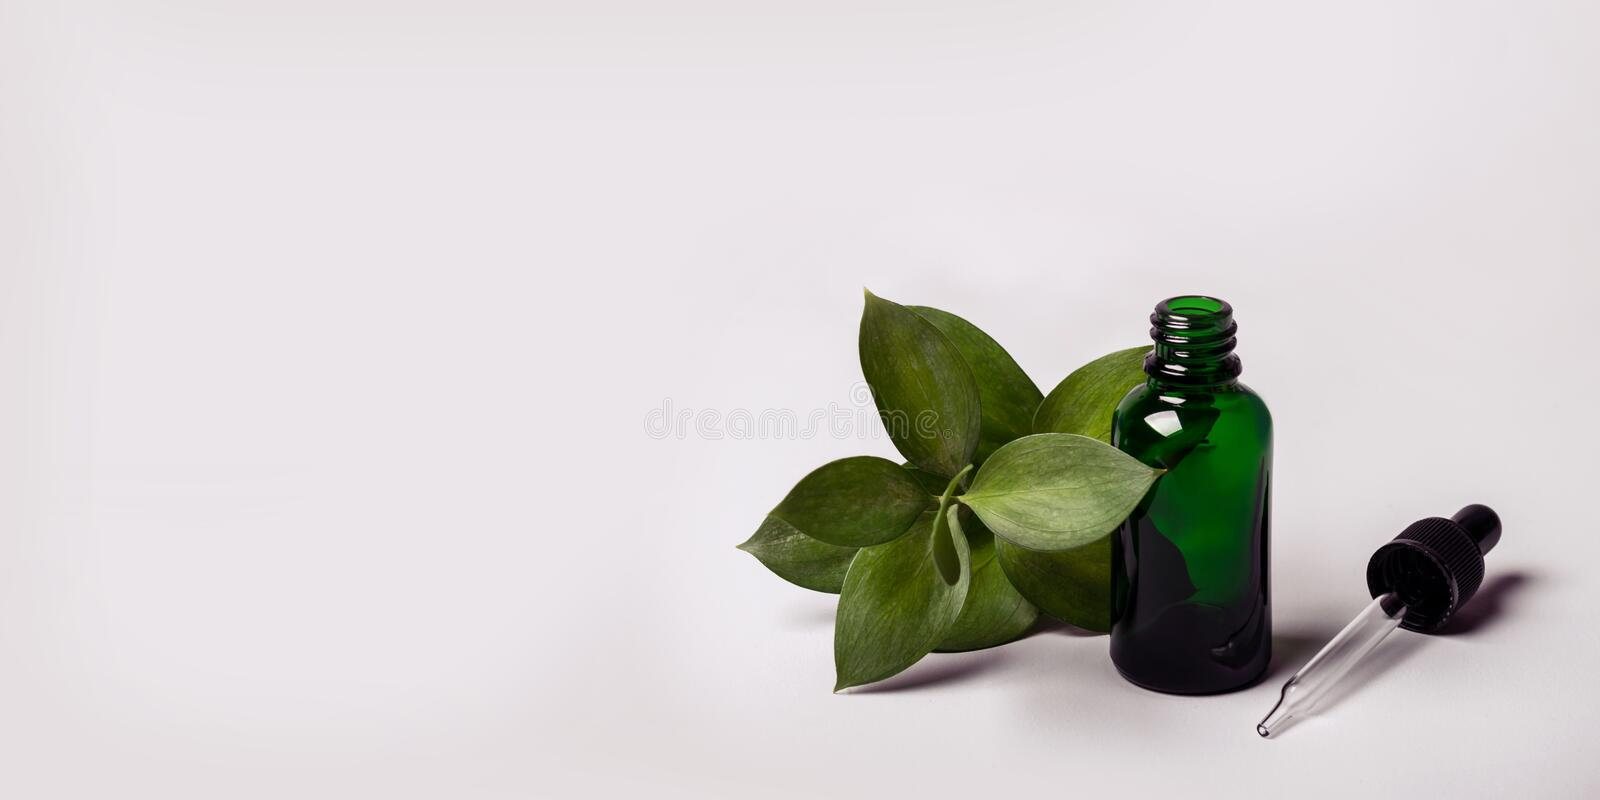 Bottle Essence Oil and green twig. Health Ecology concept royalty free stock photo